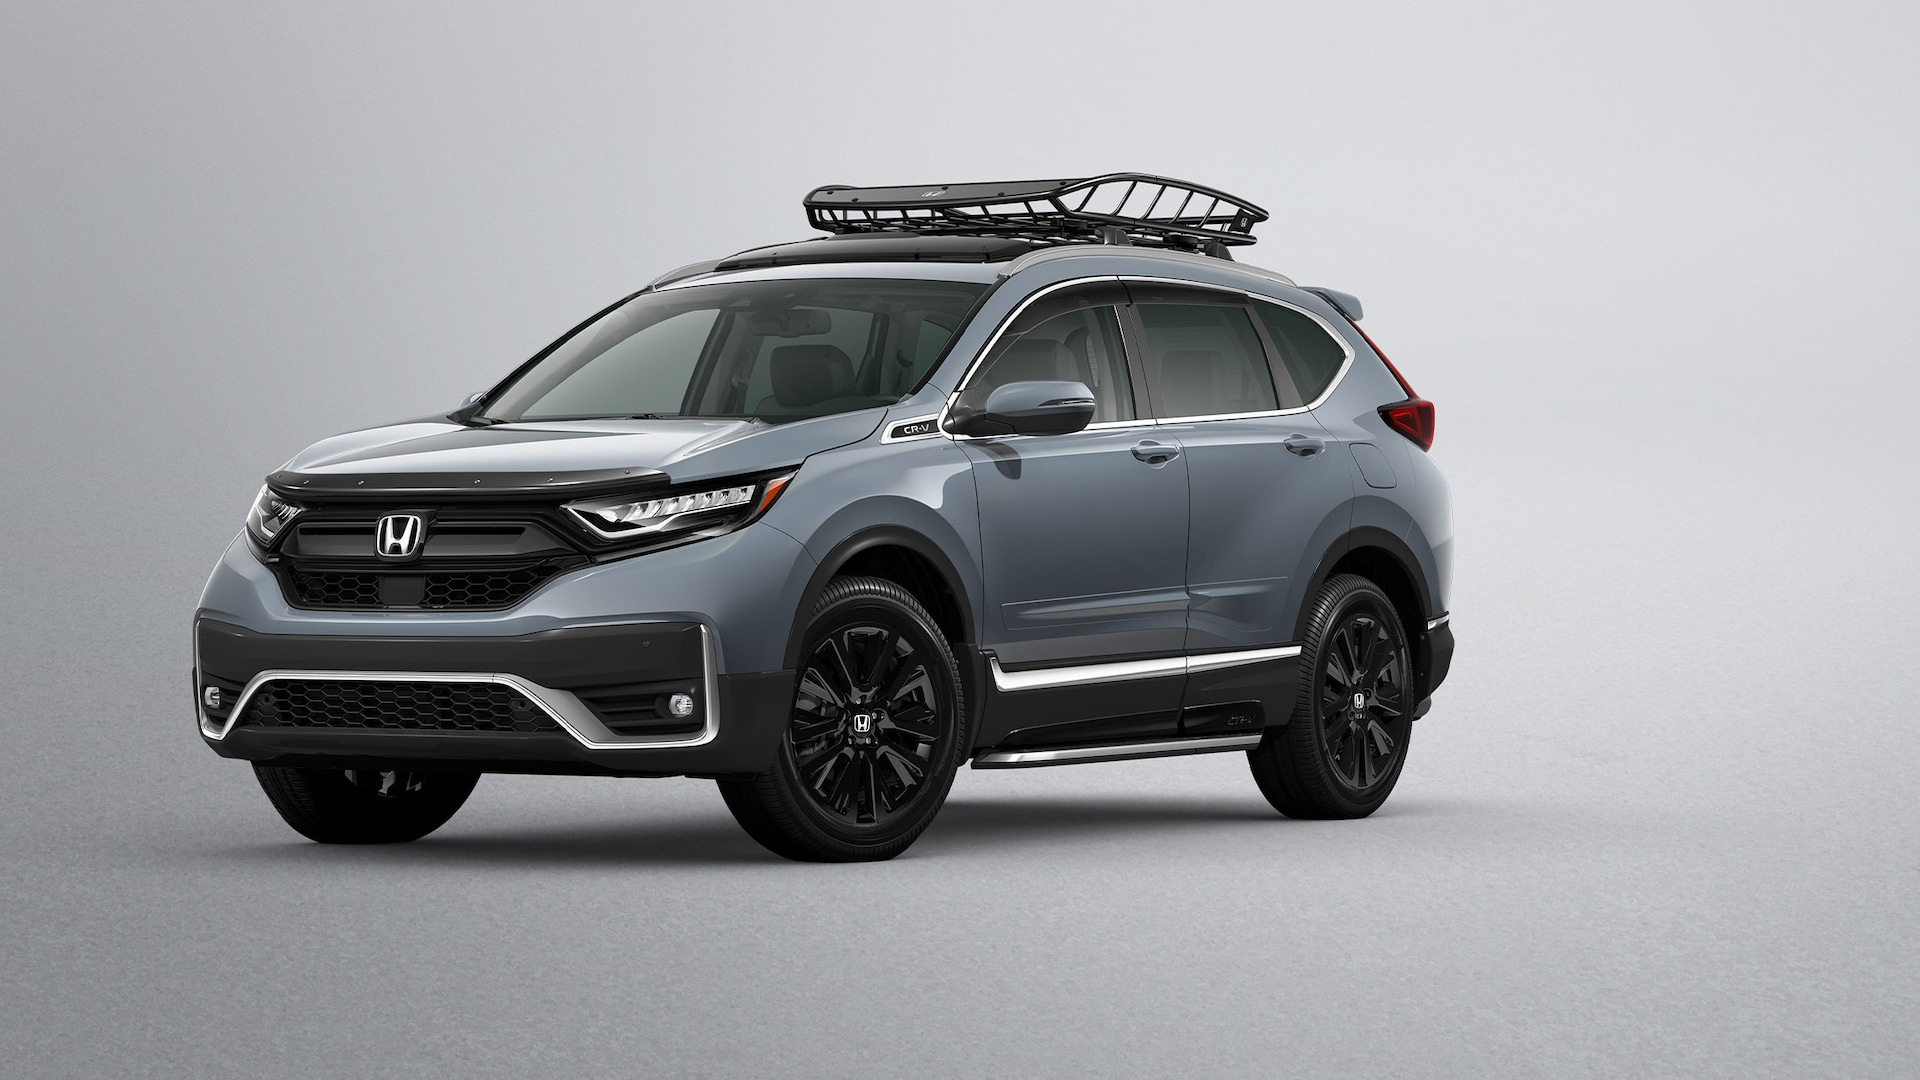 Front ¾ driver-side view of 2020 Honda CR-V in Sonic Gray Pearl shown with Honda Genuine Accessories.